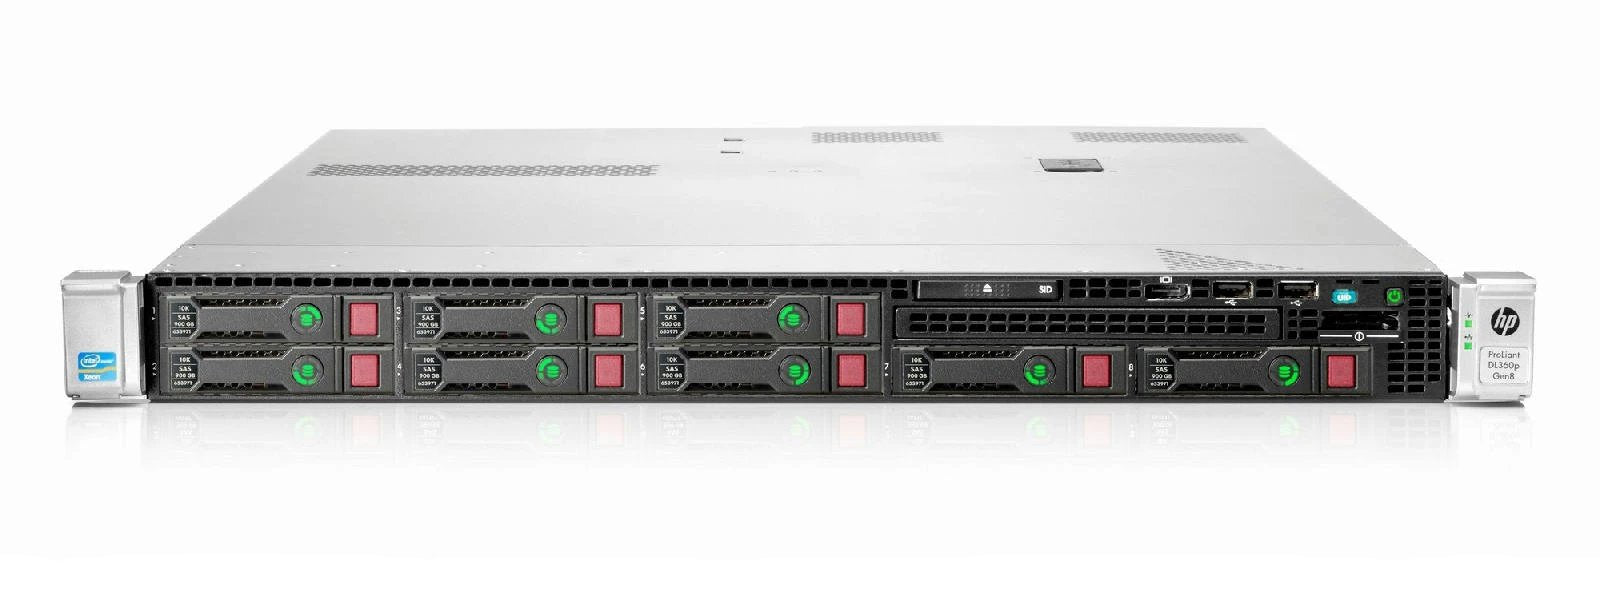 654081-B21 - HPE ProLiant DL360P Gen8 8SFF Server Chassis